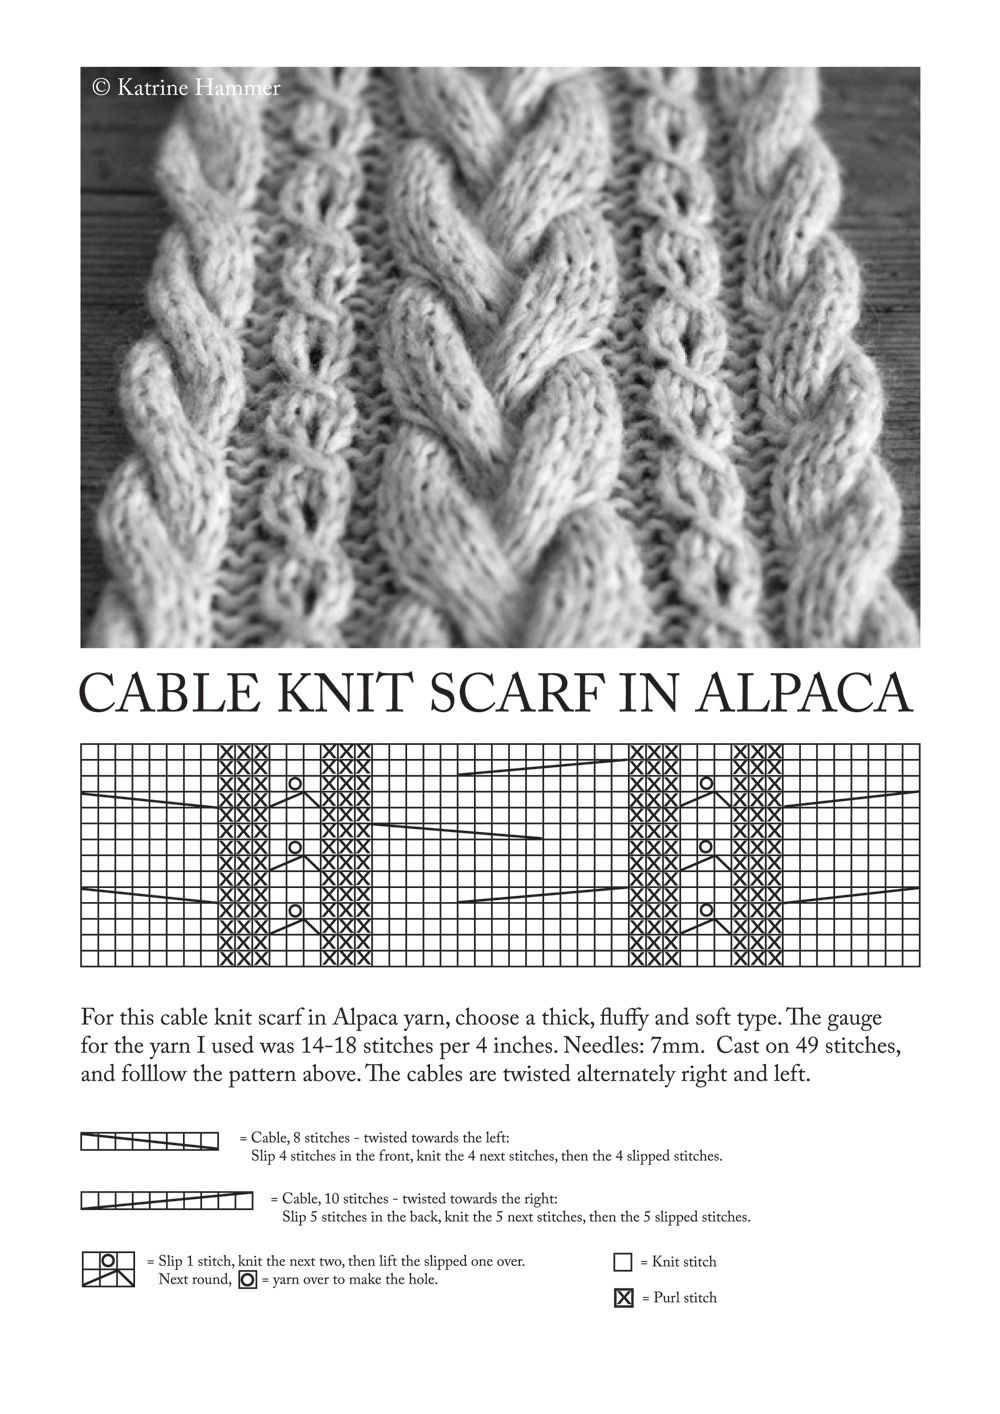 Cable knit scarf patterns 32 learn how to knit cables knitting cable knit scarf patterns 32 learn how to knit cables knitting pinterest image bankloansurffo Image collections